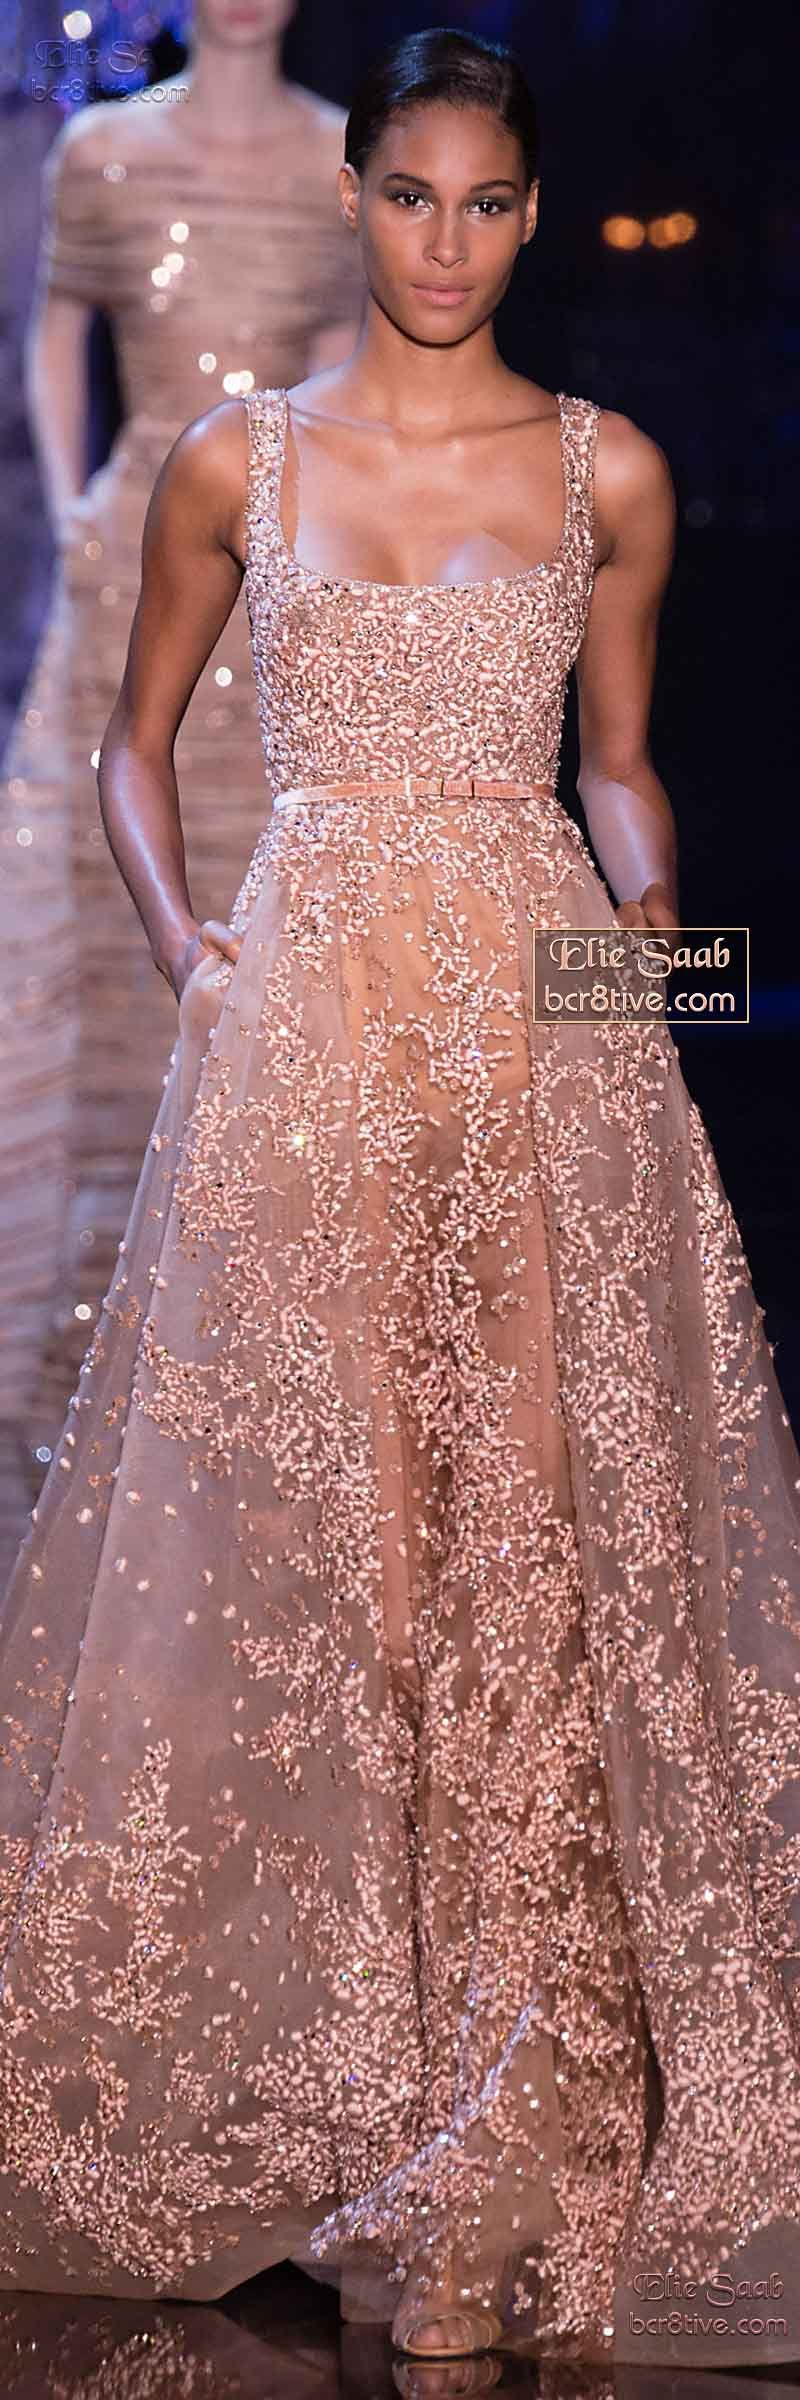 Elie Saab Fall Winter 2014-15 Couture | Ellie saab, Me encantas y ...